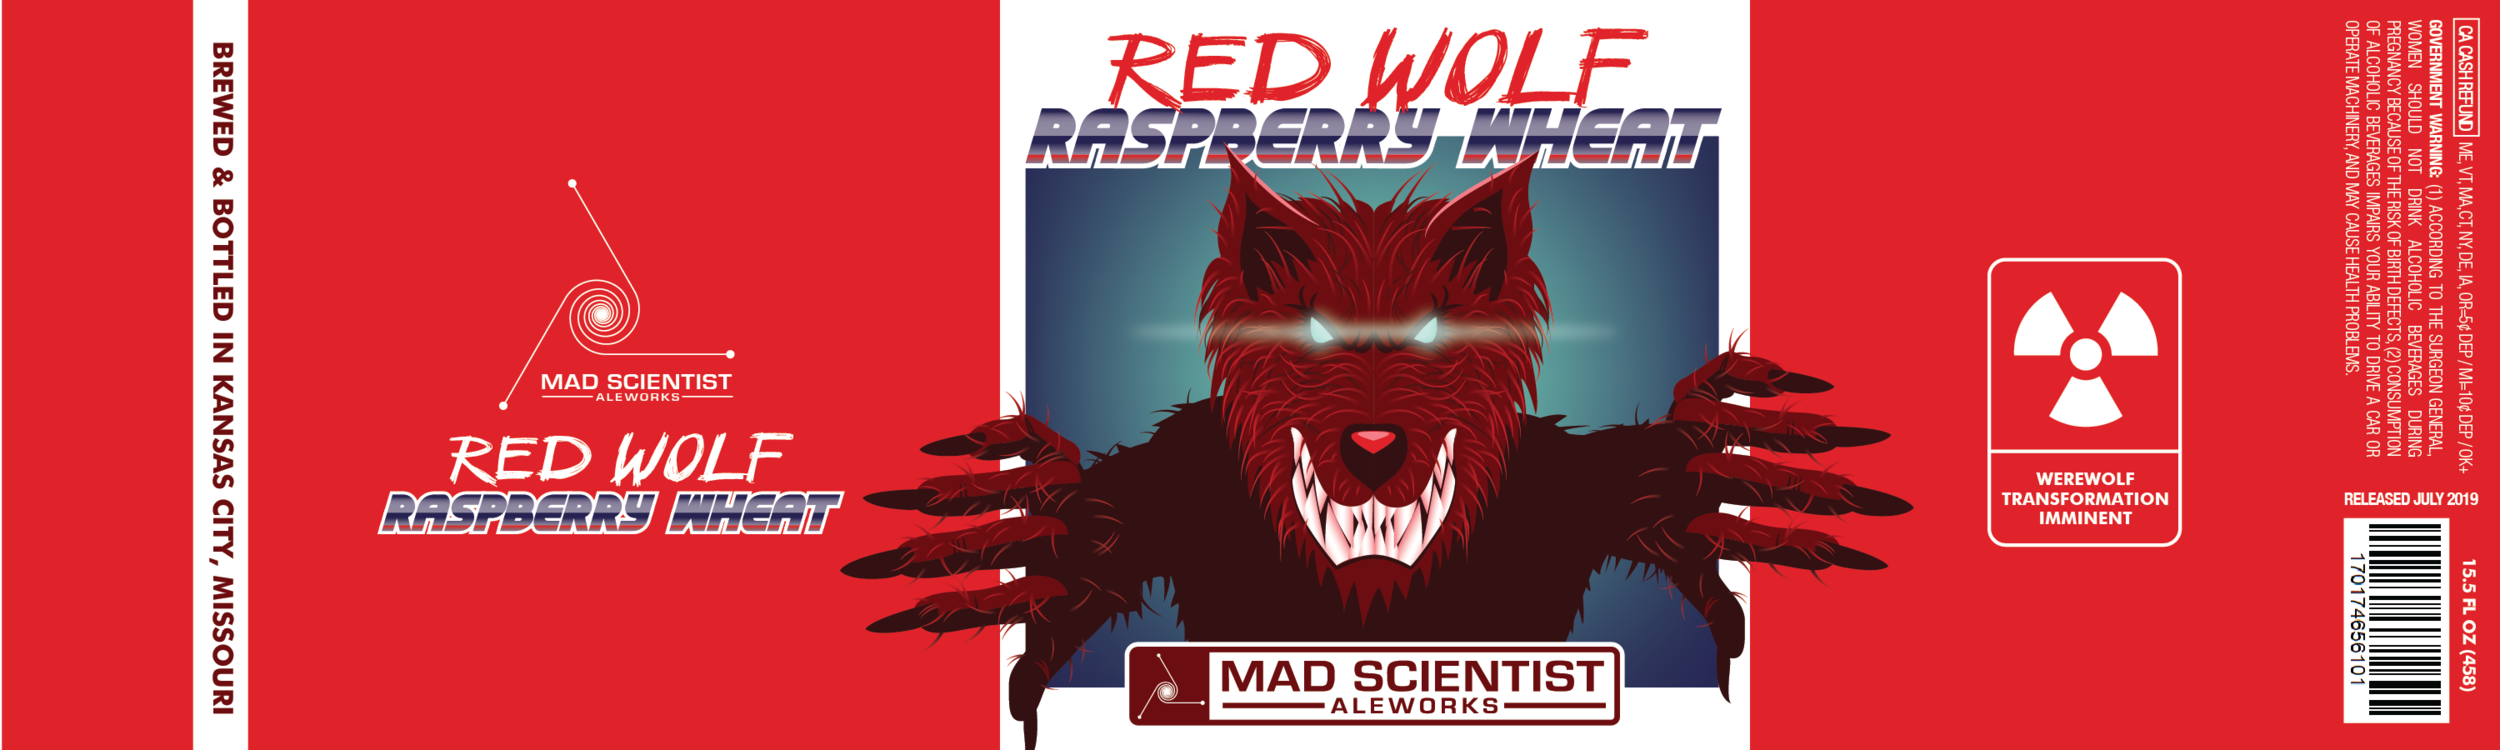 RedWolf-Label_design-01.png